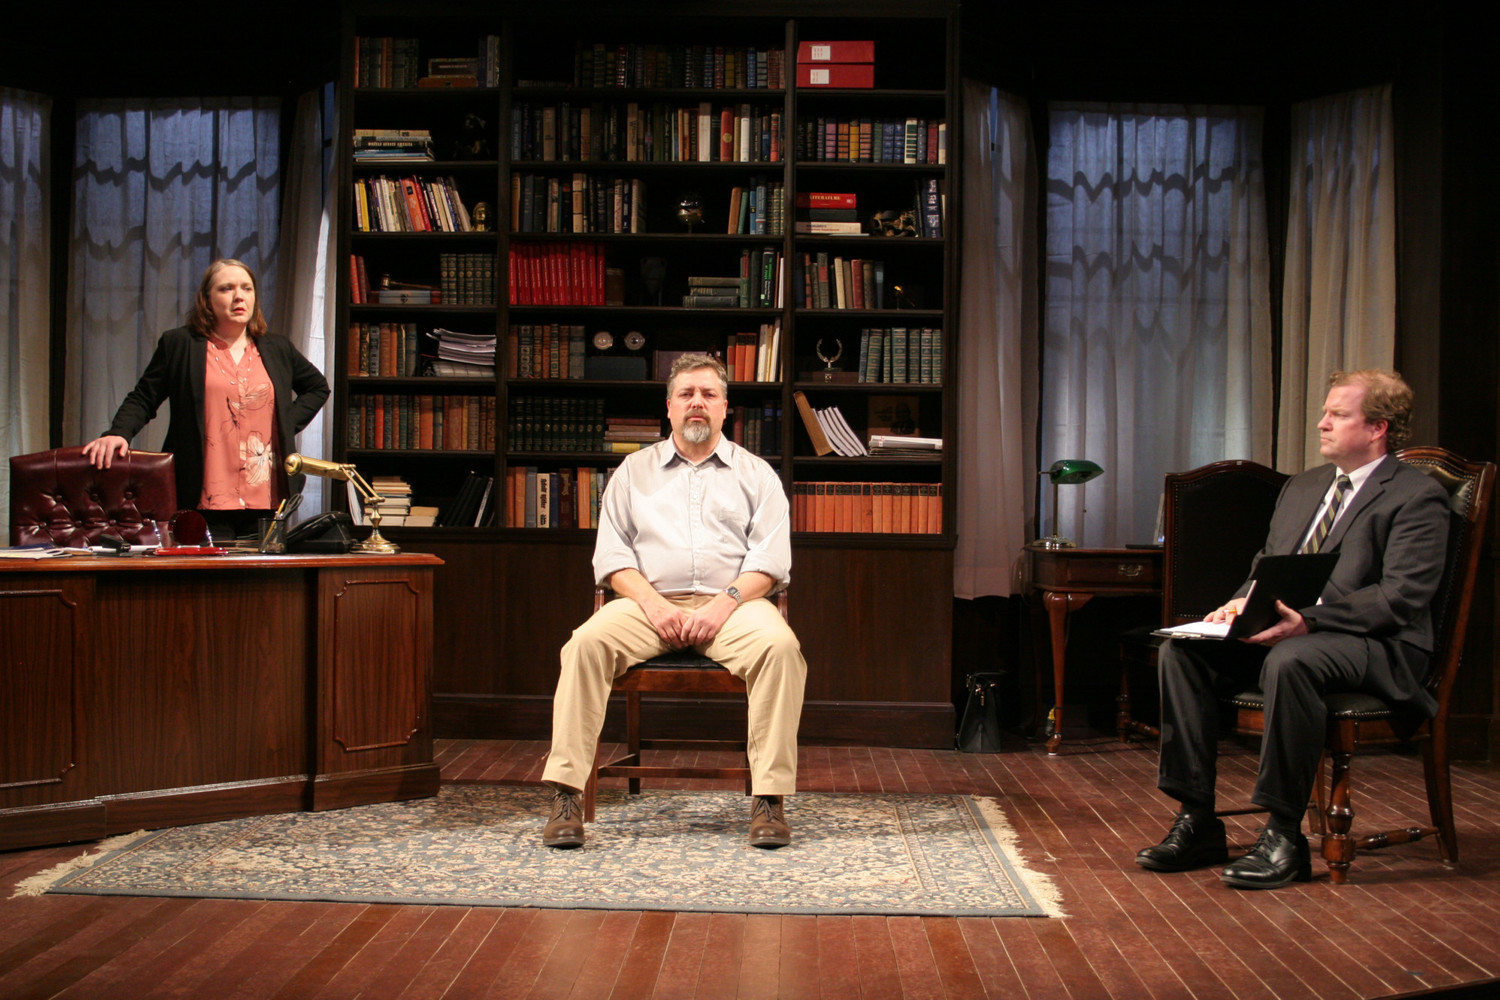 BWW Review: Impressive POWER OF SAIL Premieres at Warehouse Theatre